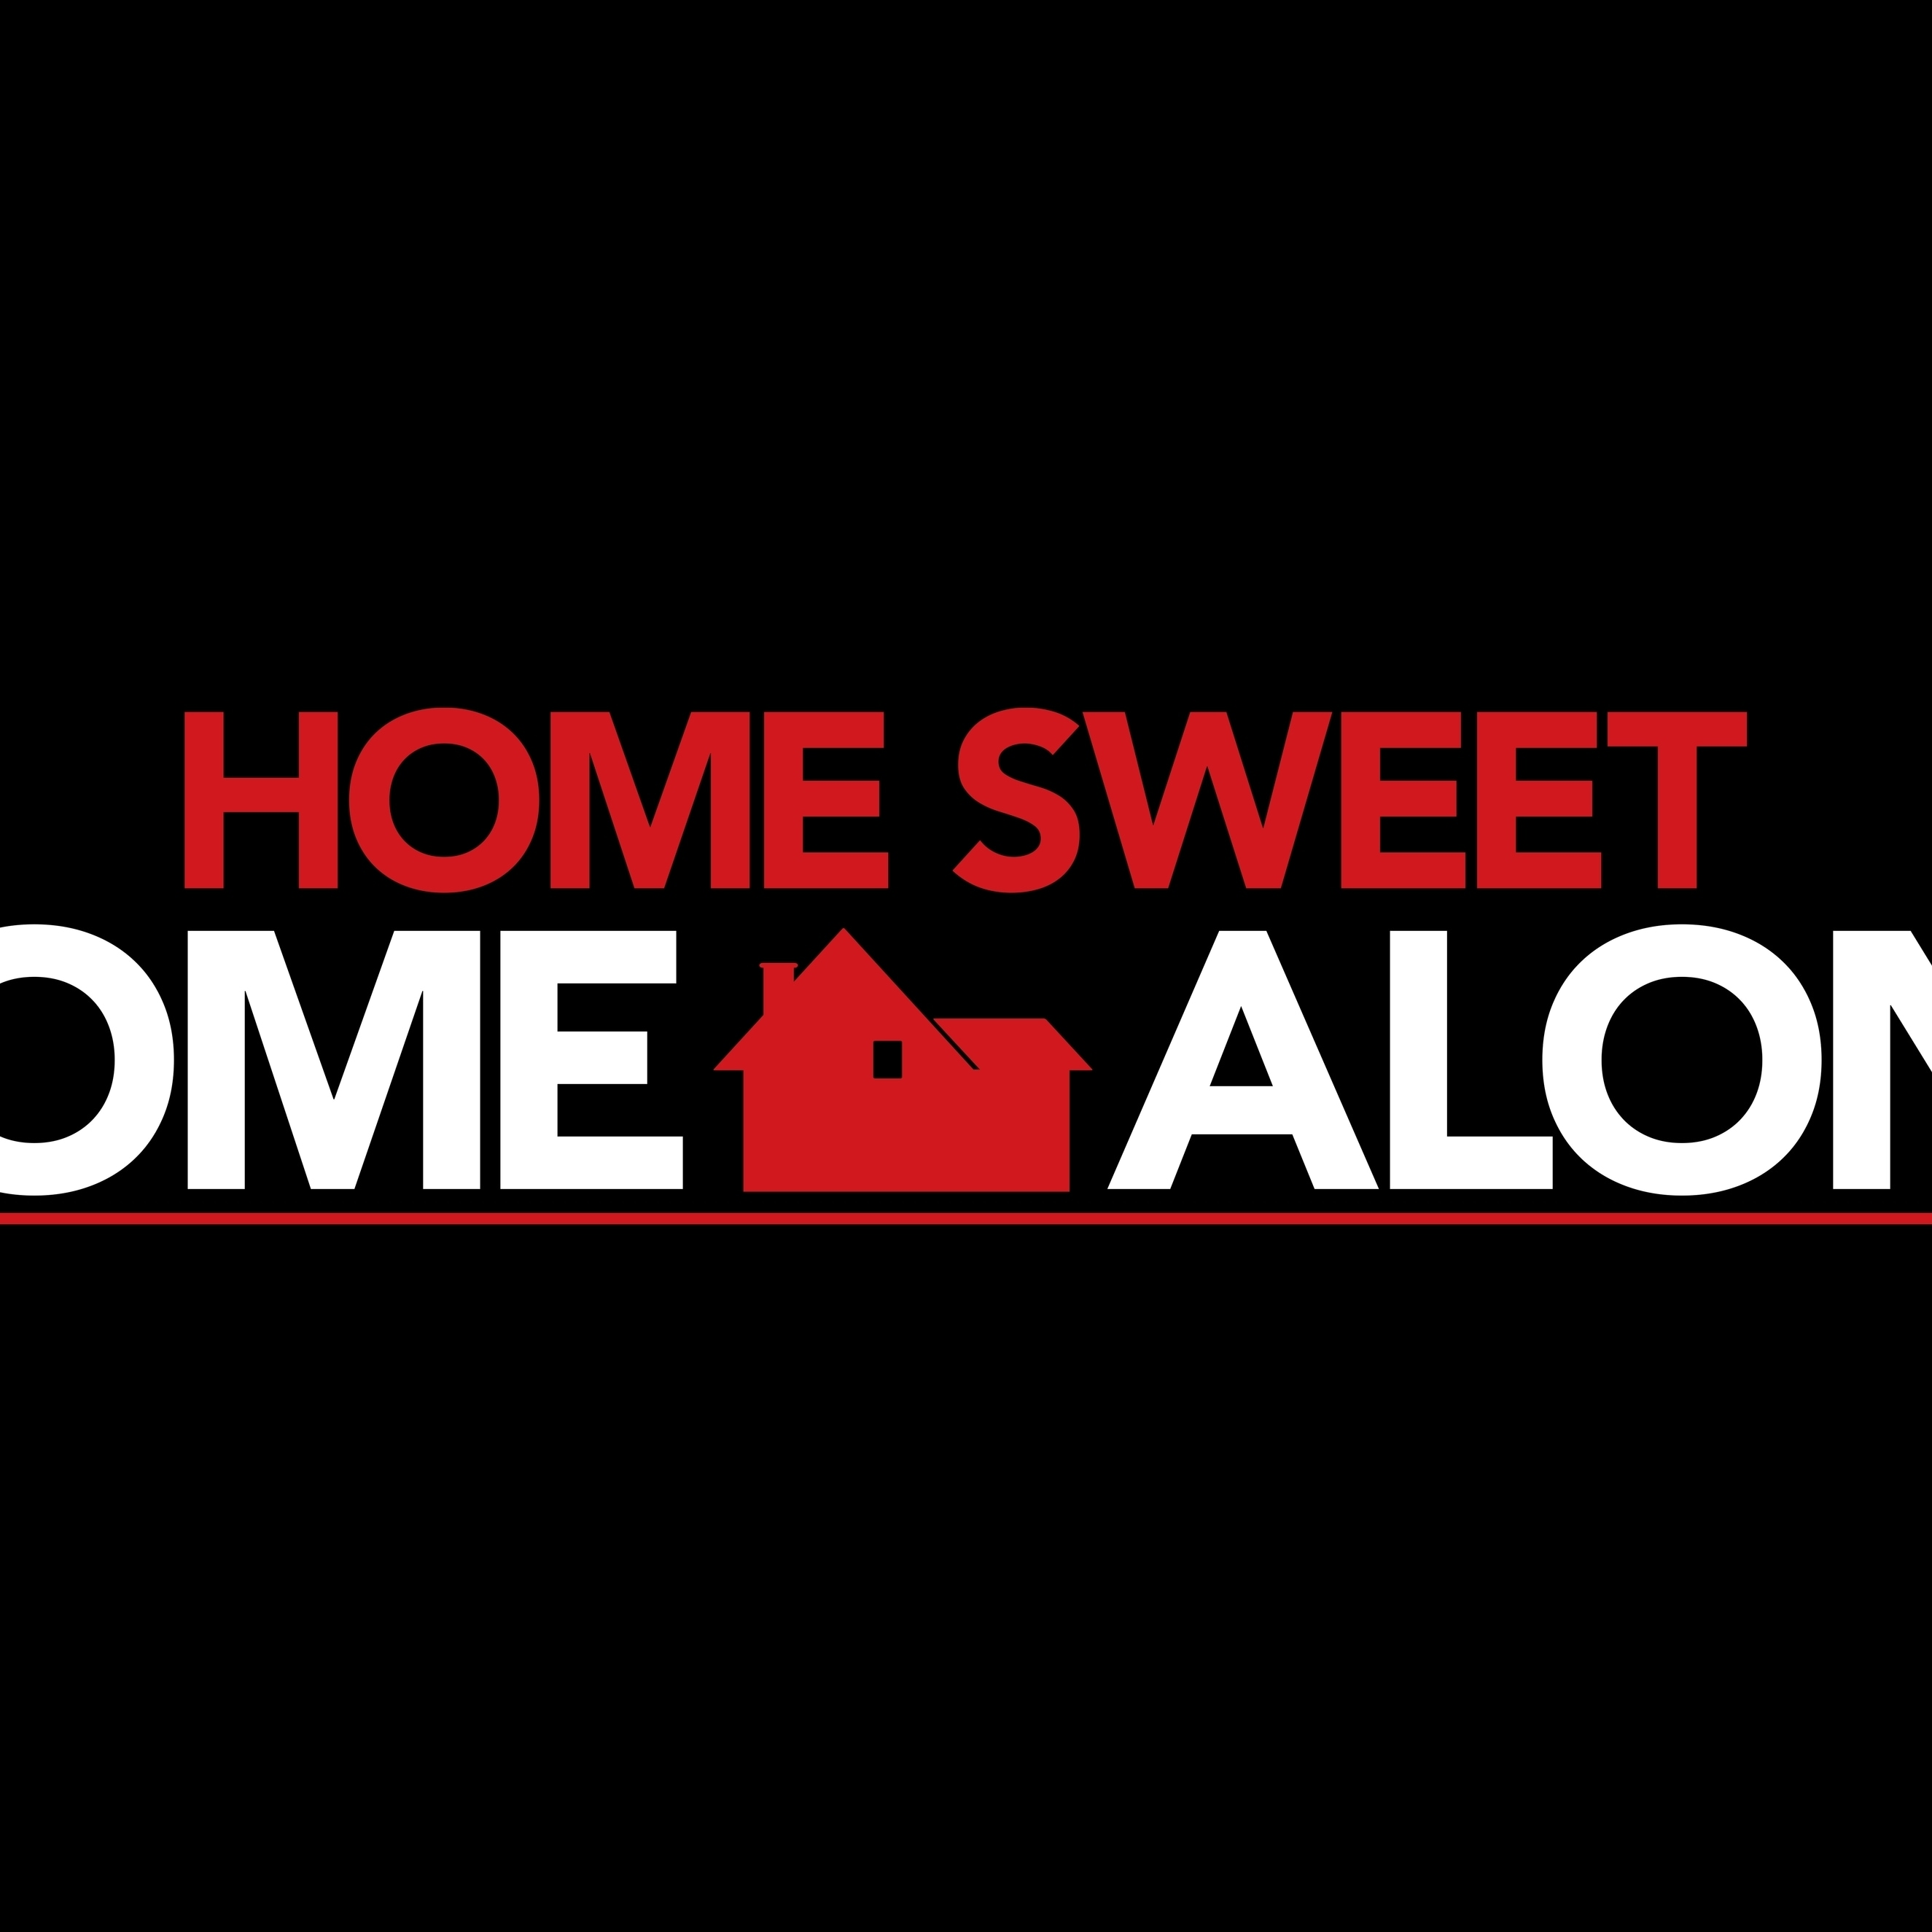 """DISNEY+ RELEASES FIRST TRAILER FOR ALL-NEW ADVENTURE COMEDY """"HOME SWEET HOME ALONE"""" PREMIERING ON DISNEY+ DAY"""